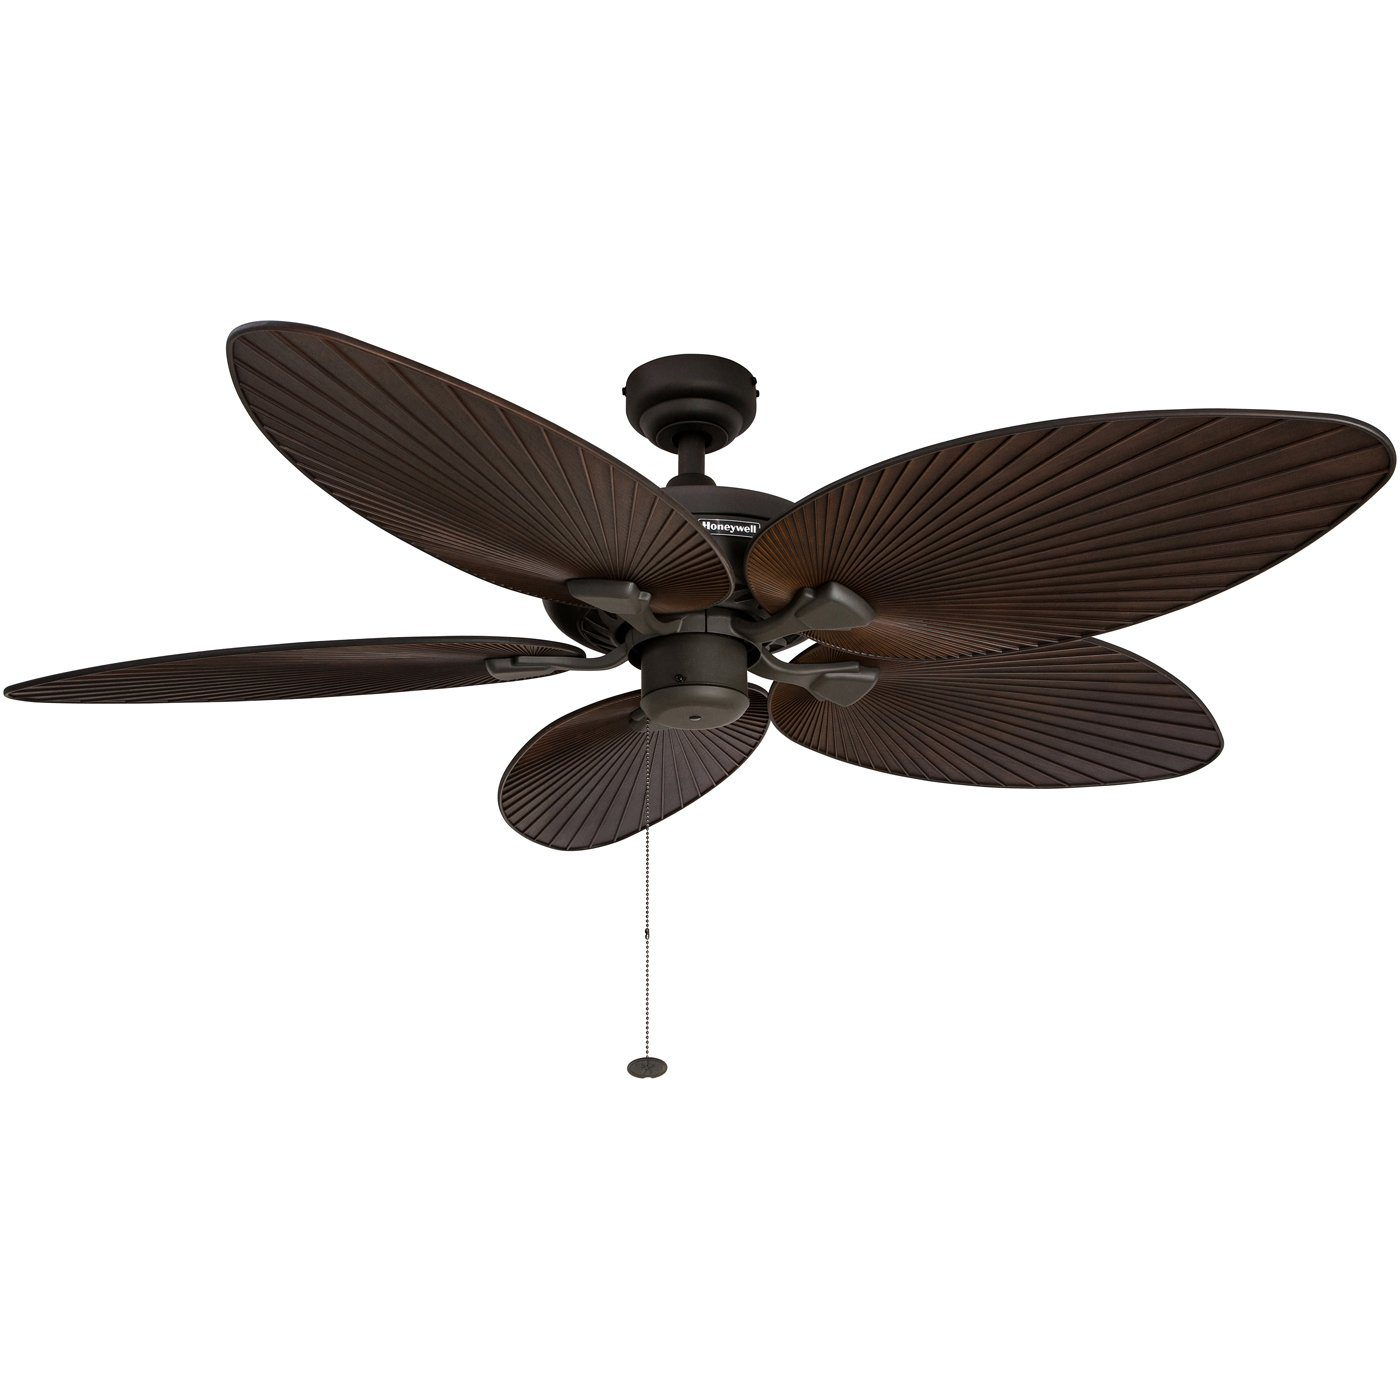 Honeywell Palm Island 52-Inch Tropical Ceiling Fan